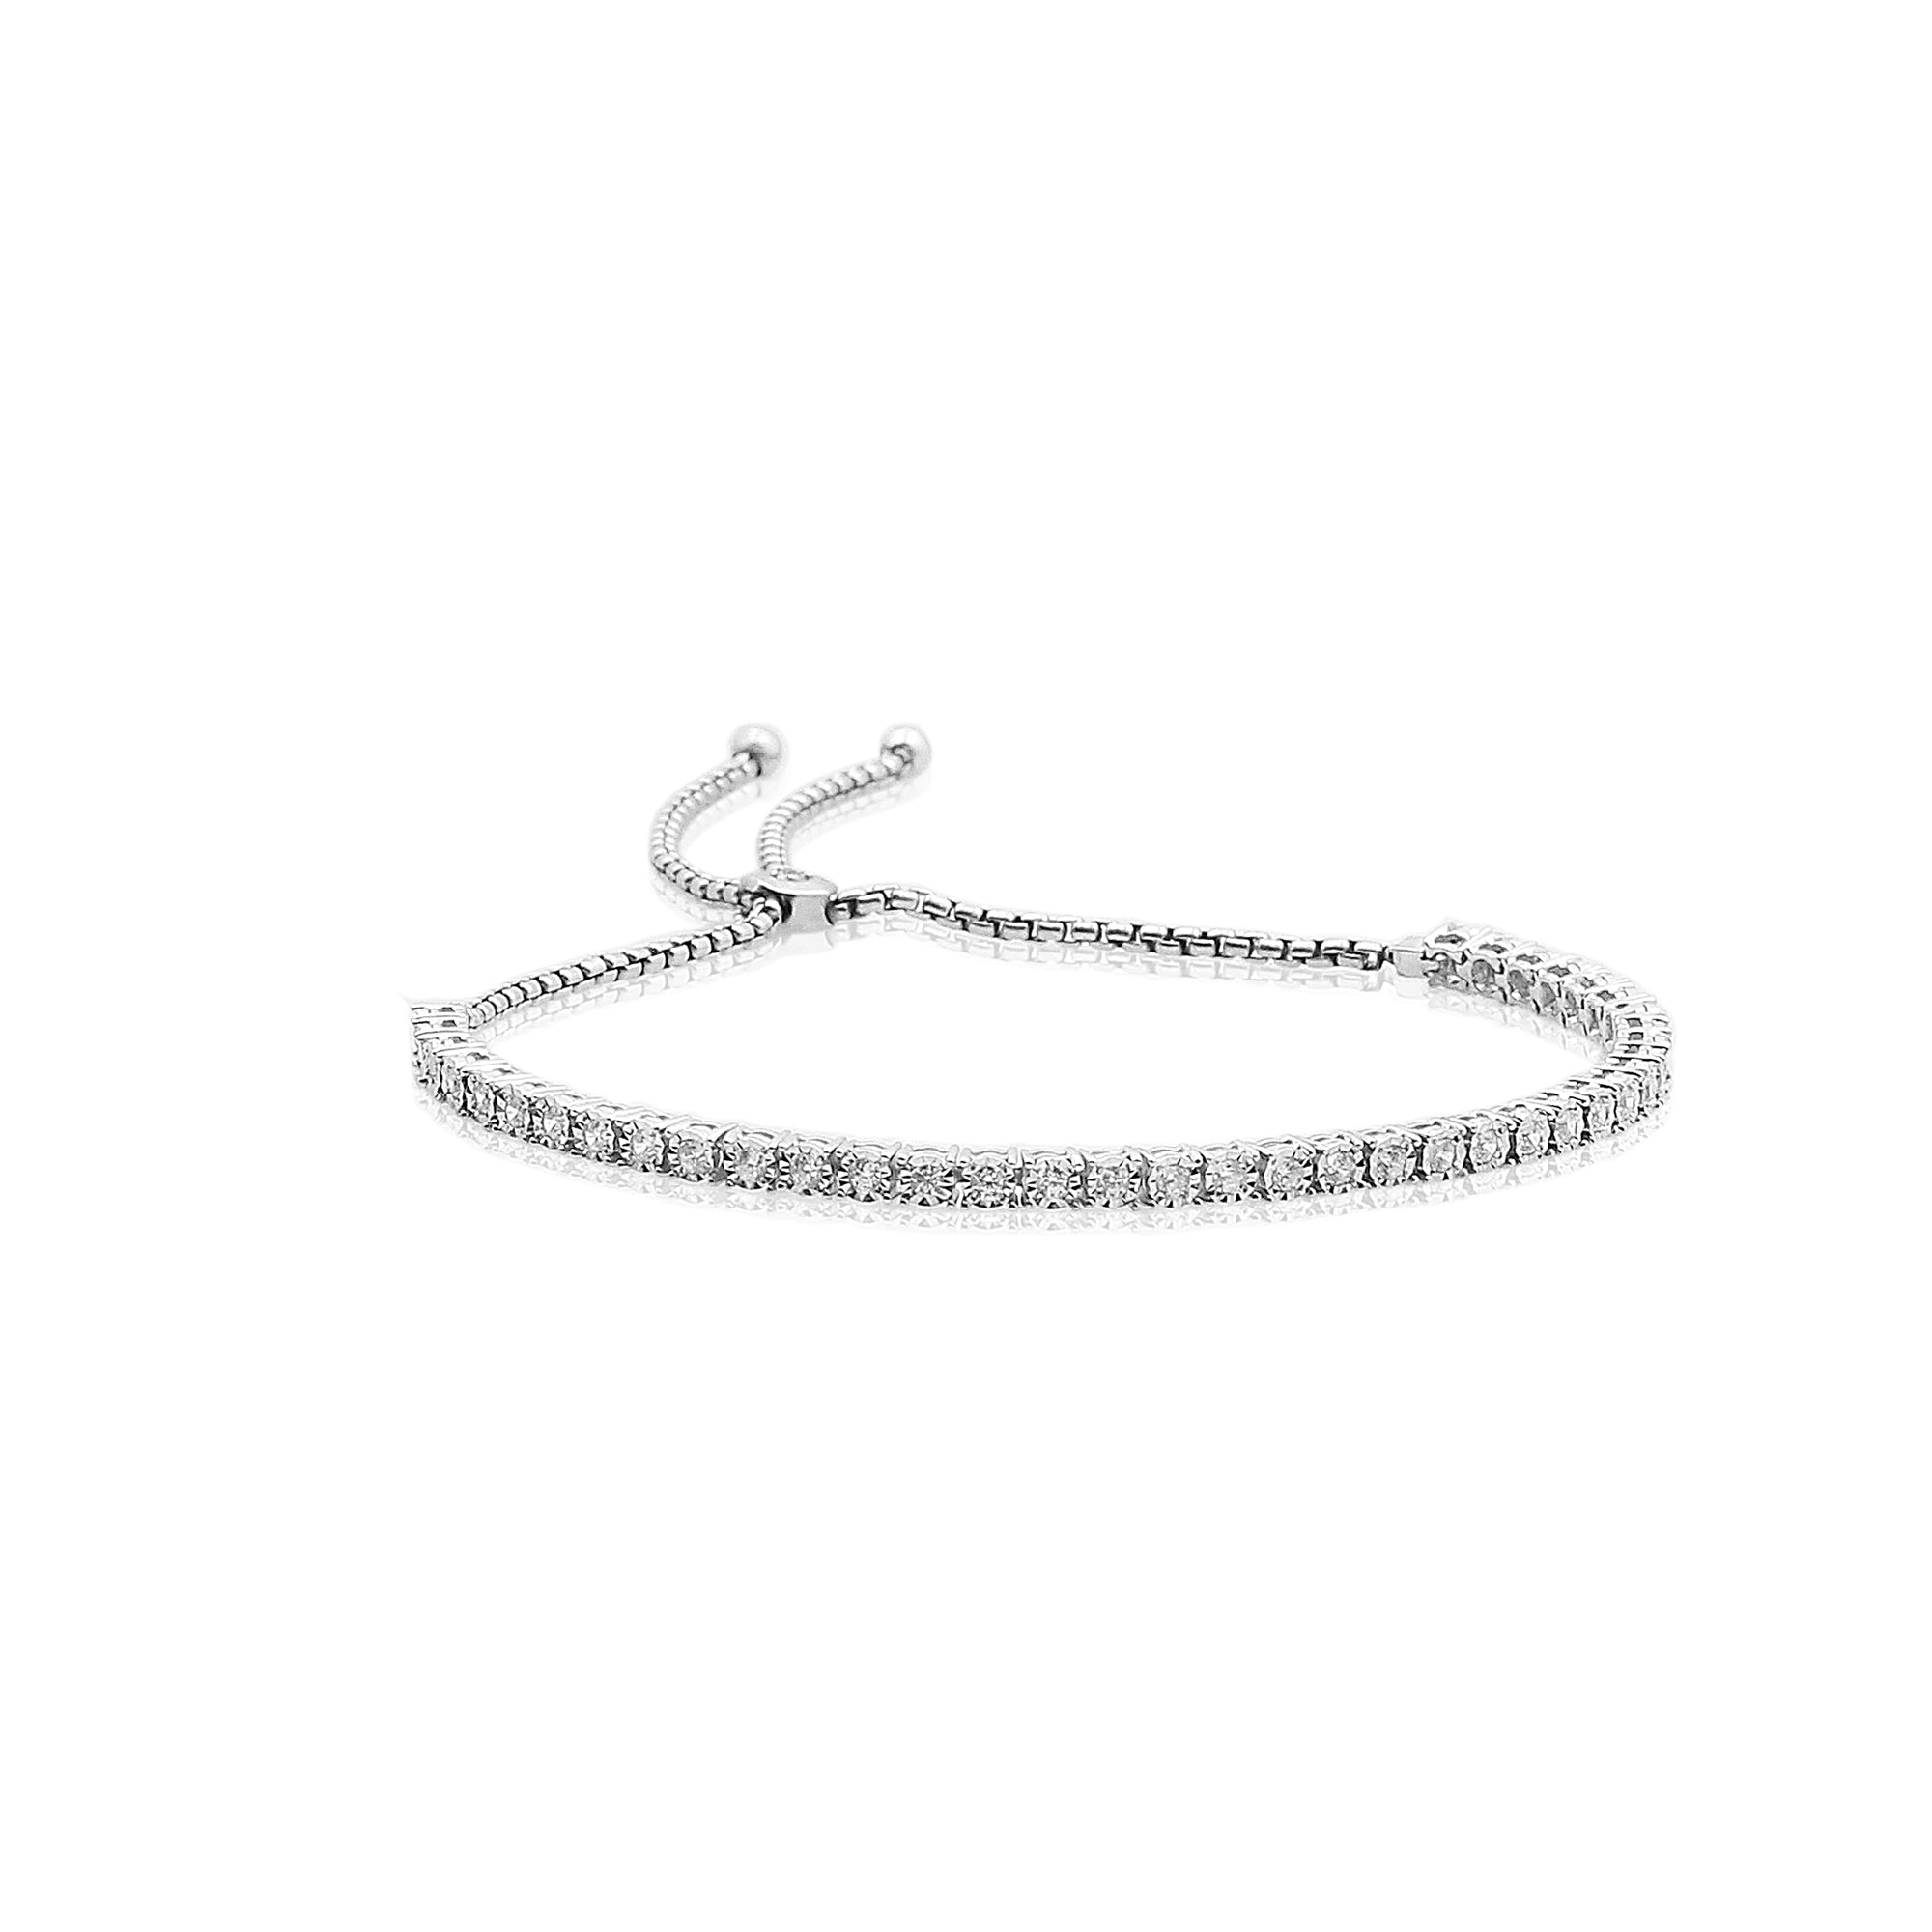 tennis harris anklet products bracelet diamond white melissa shopify gold jewellery